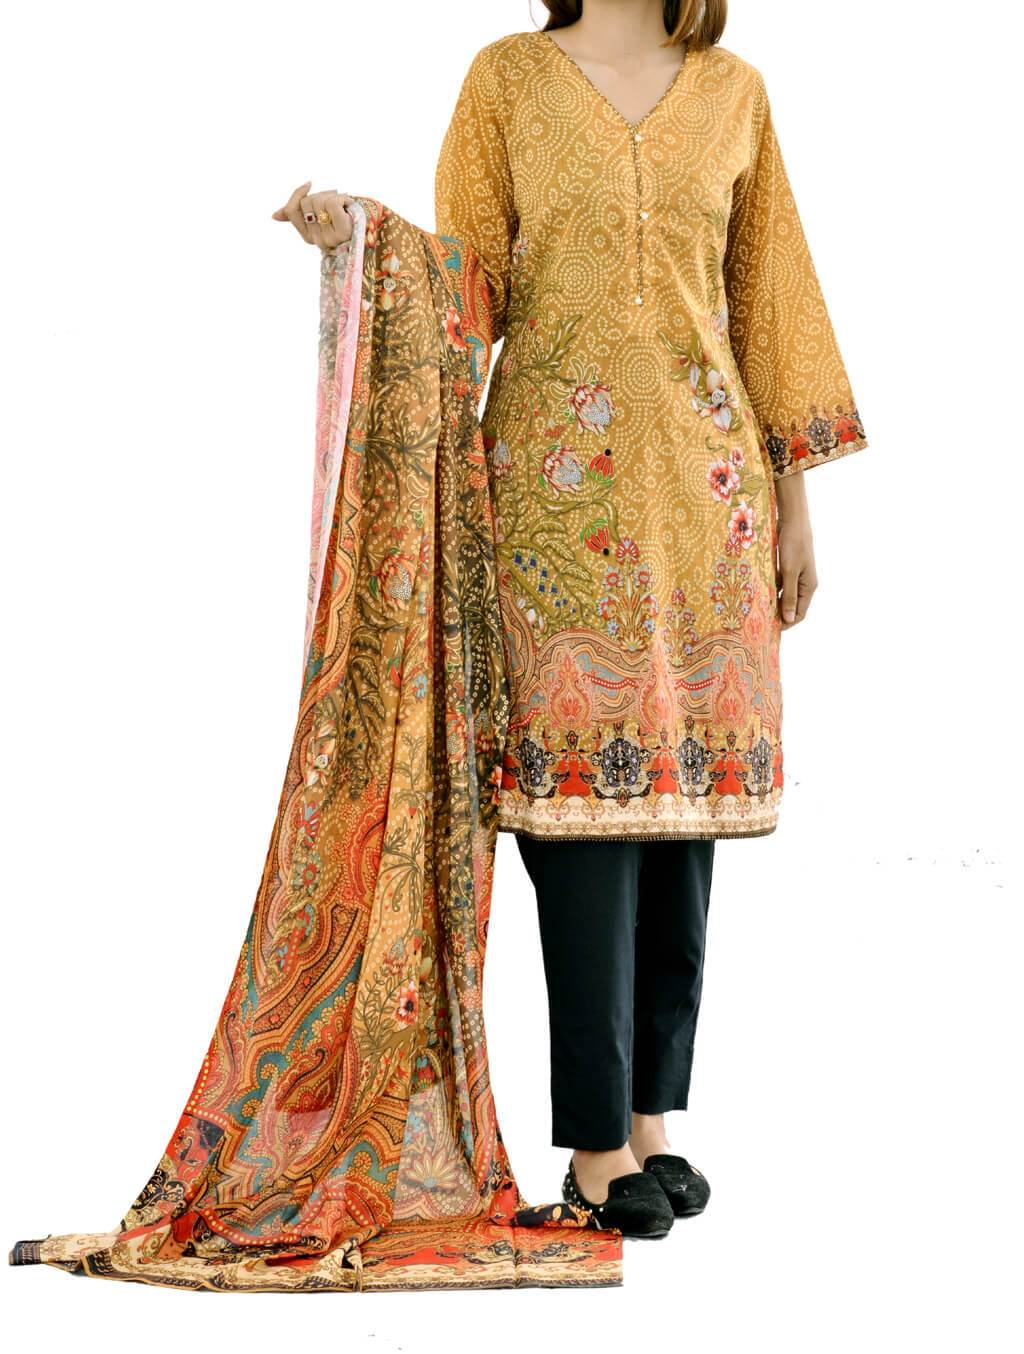 2 PCS SHIRT & DUPATTA DKL-4025 2 Piece Lawn Collection FASSTILAD